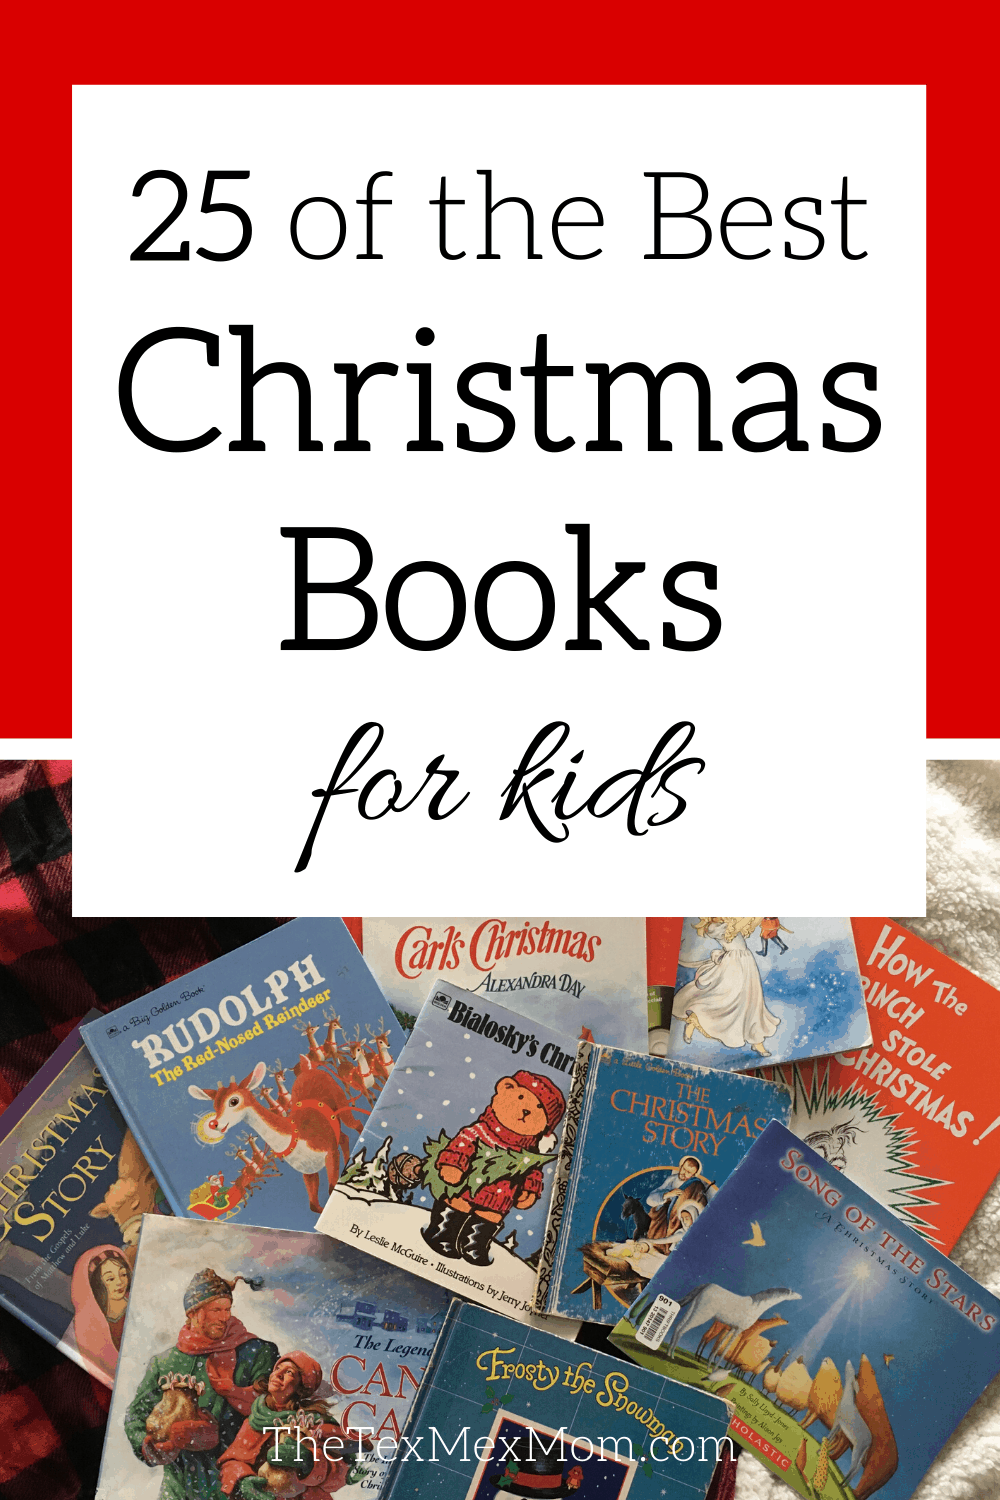 Christmas books for the whole family